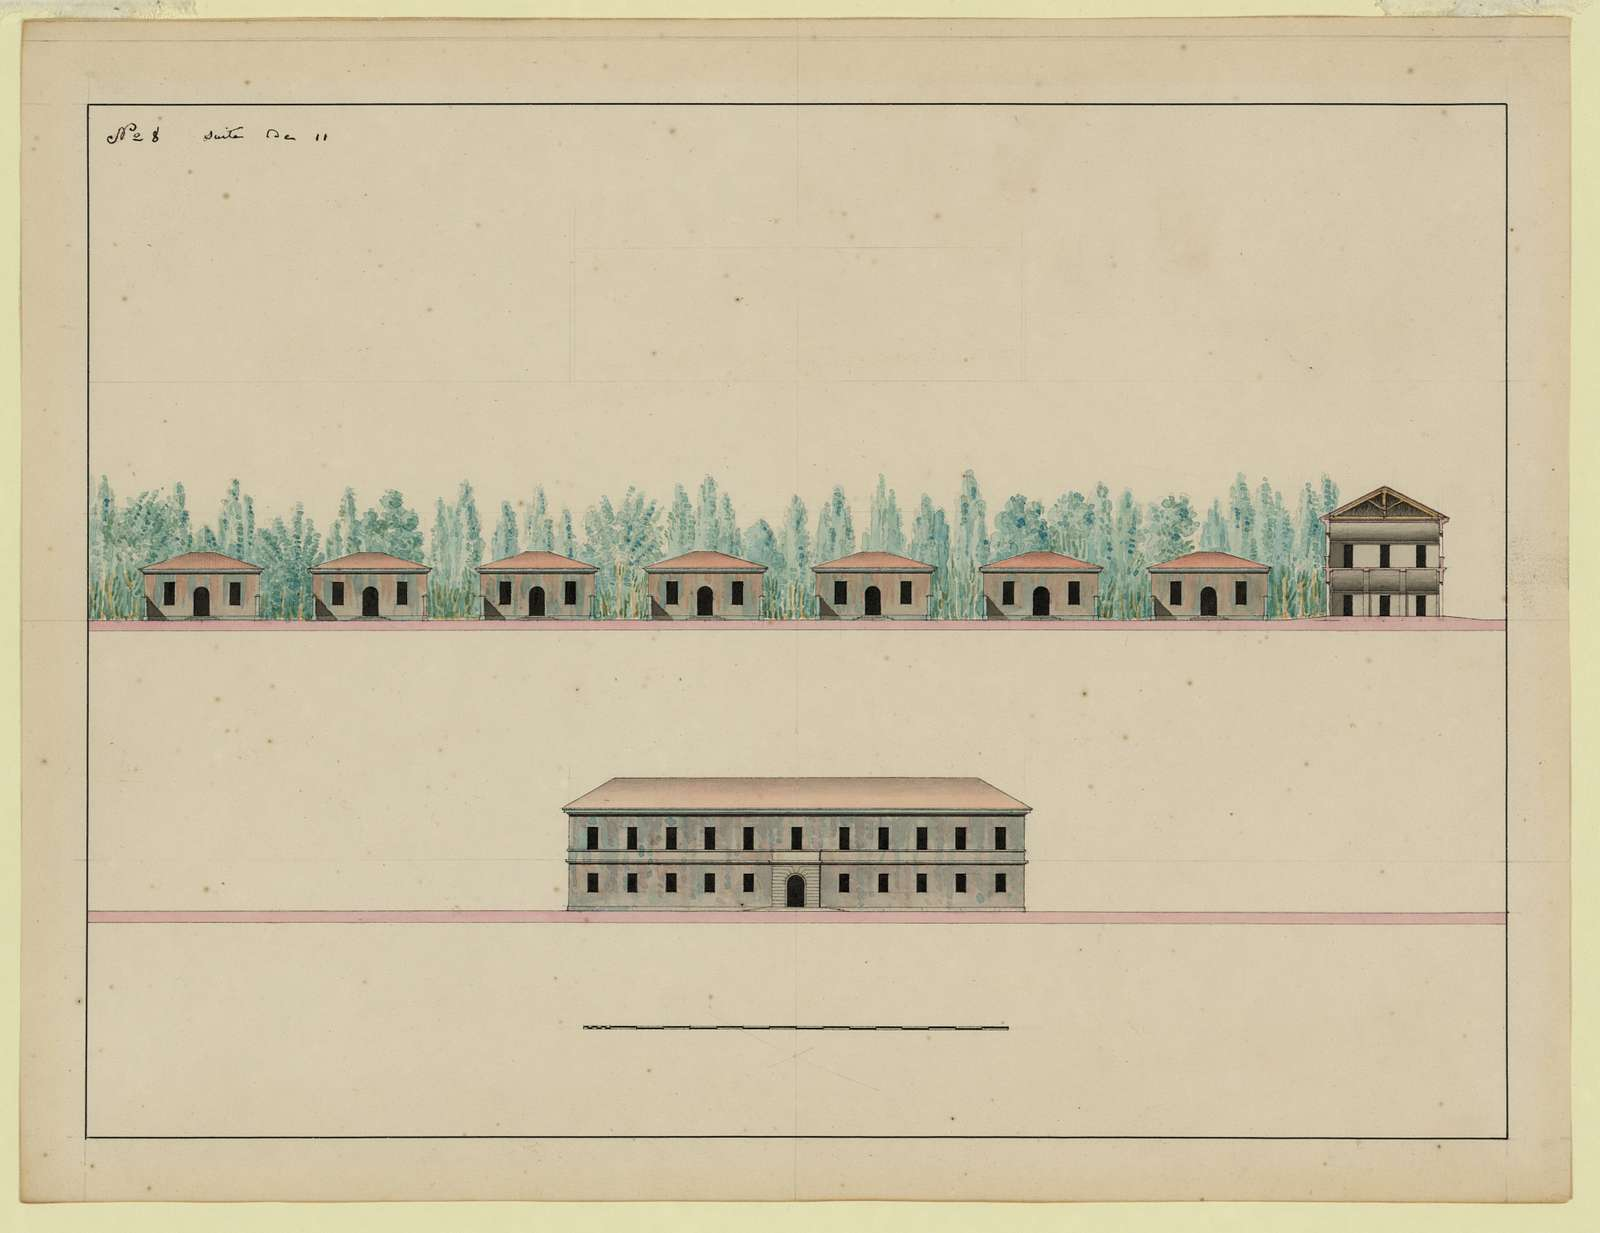 [Hunting lodge with pavilions]